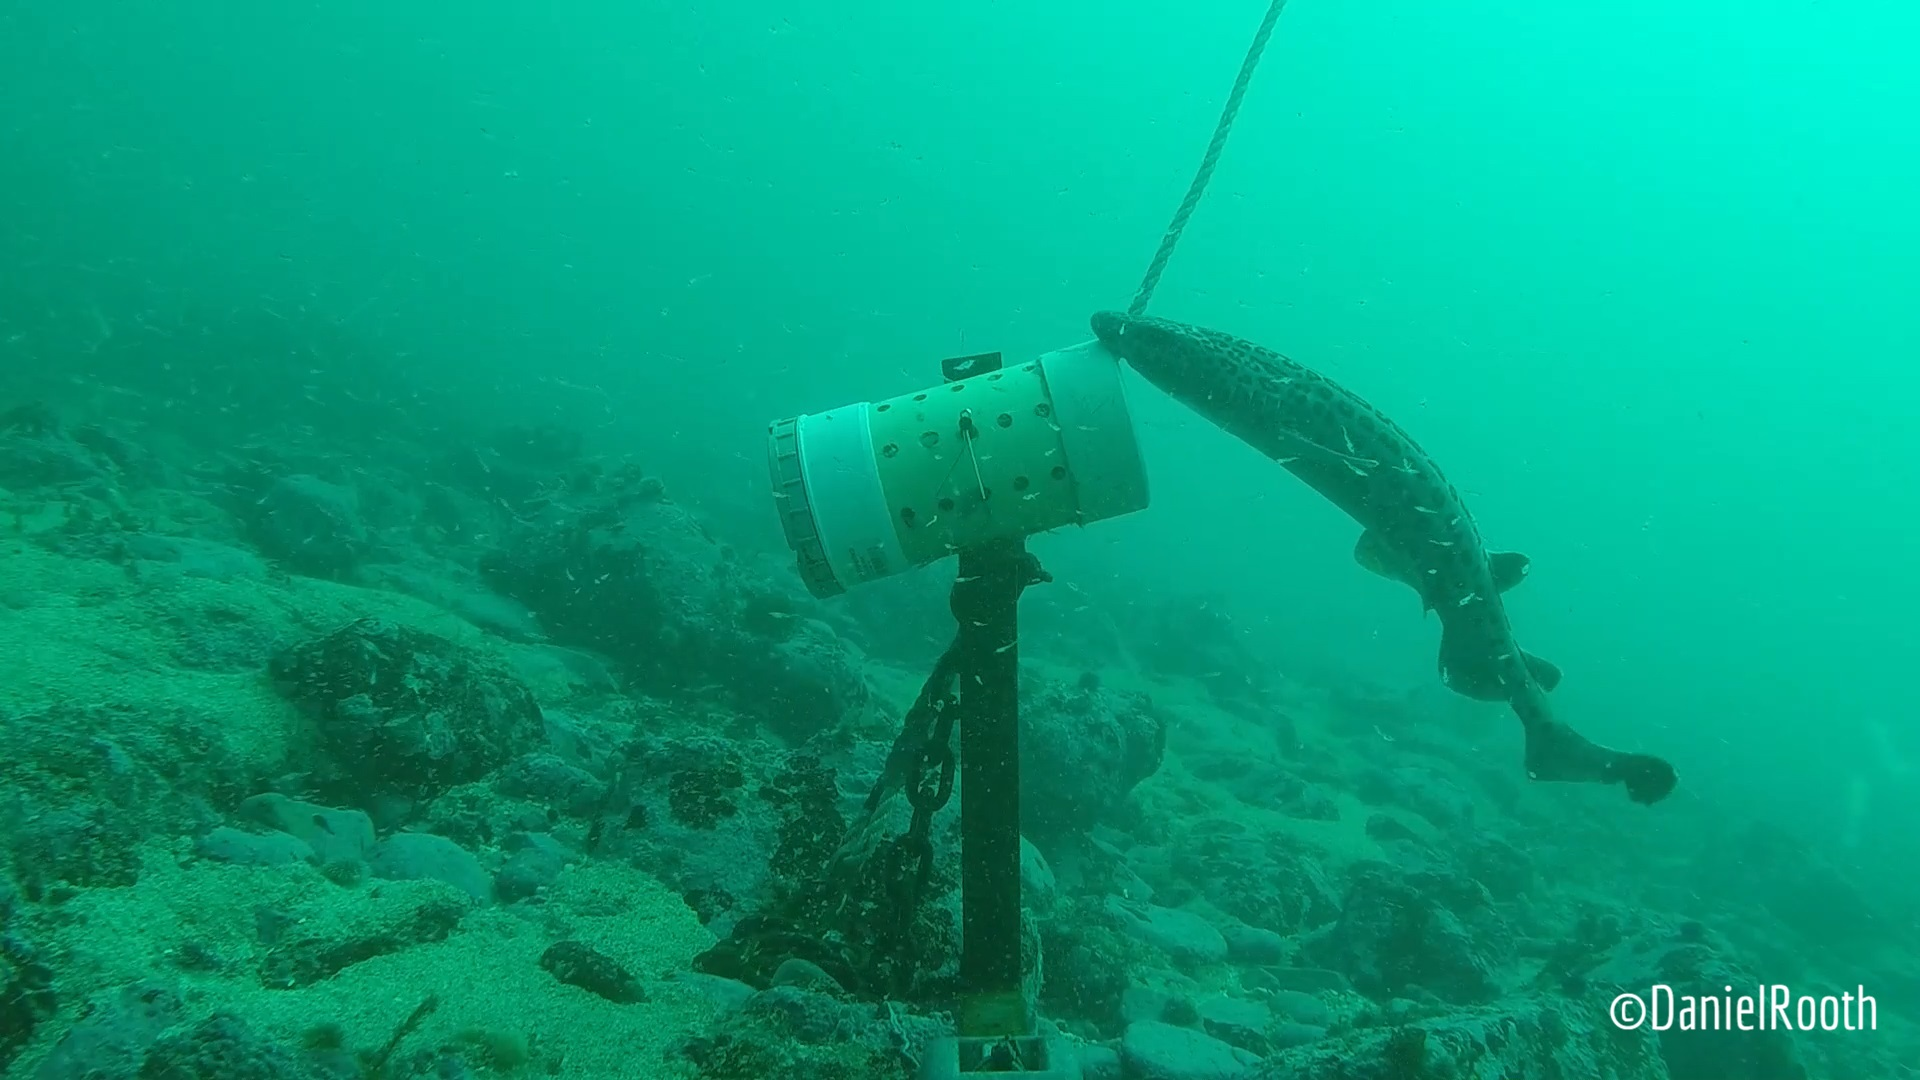 Daniel's BRUV Study yields some interesting results about the small sharks in Gansbaai!